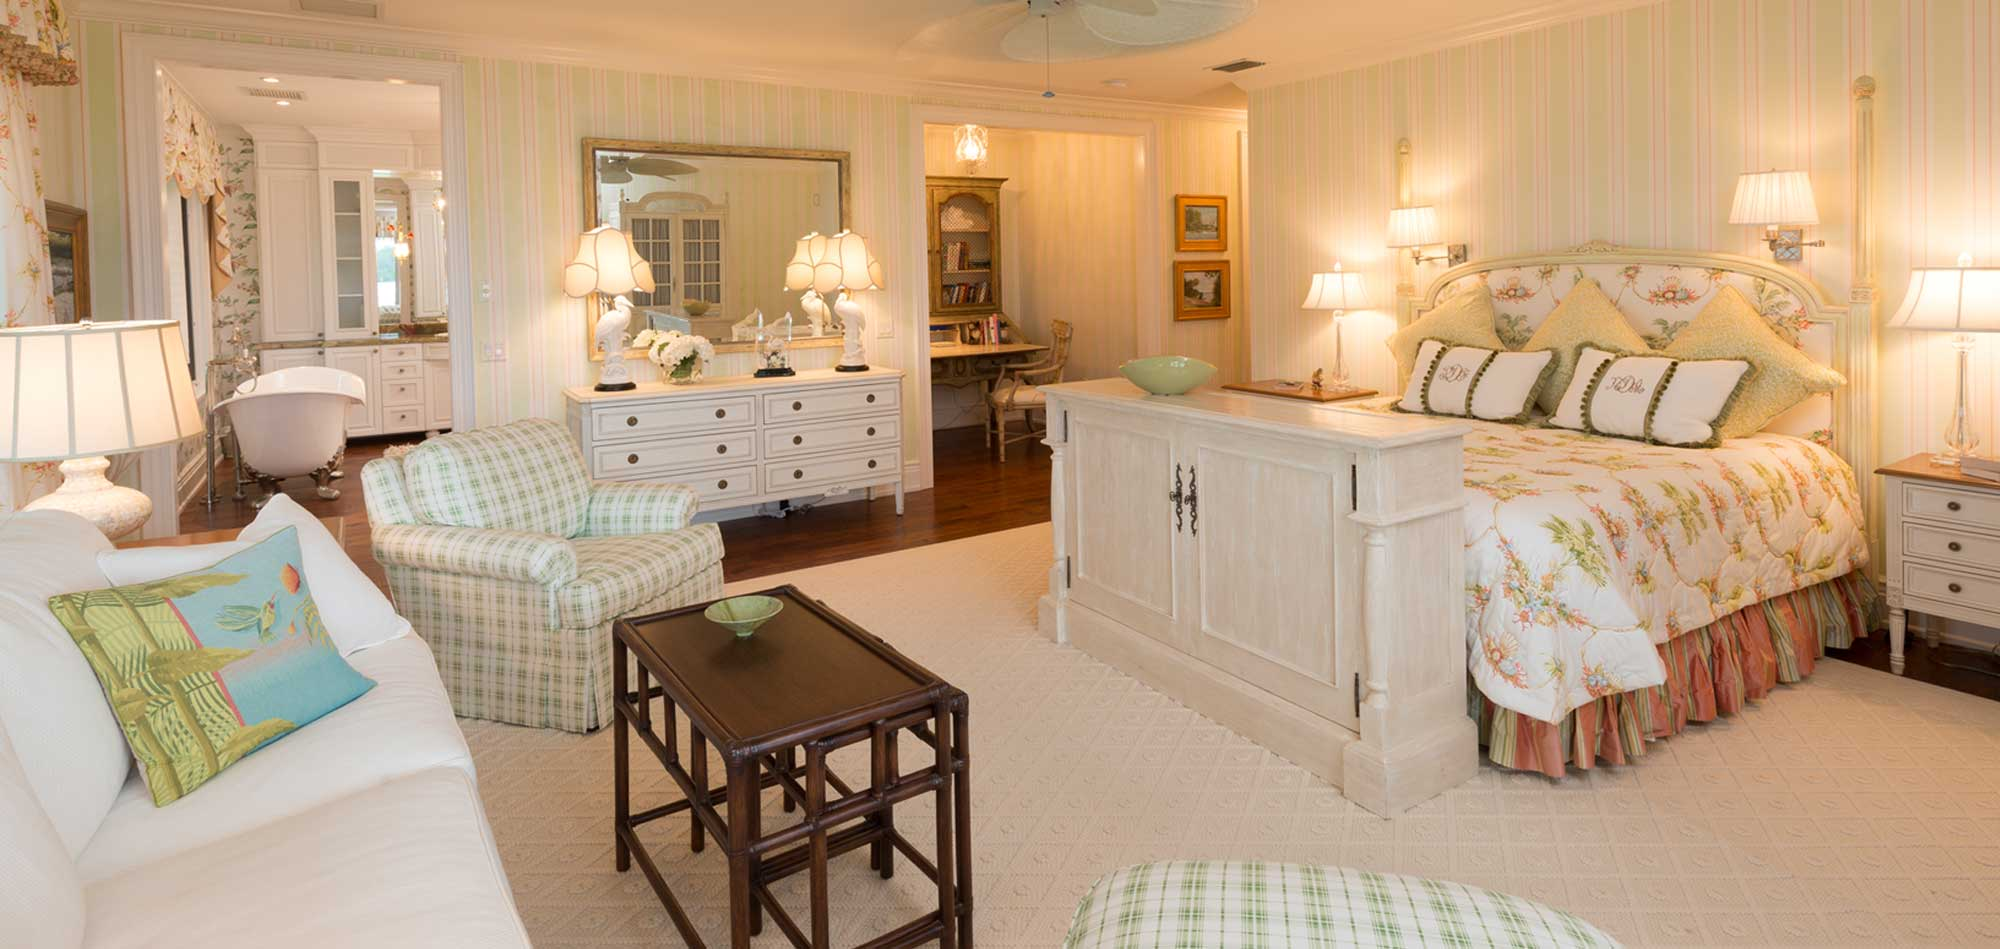 Ordinaire MKID Interior Design Services Near Sarasota, FL